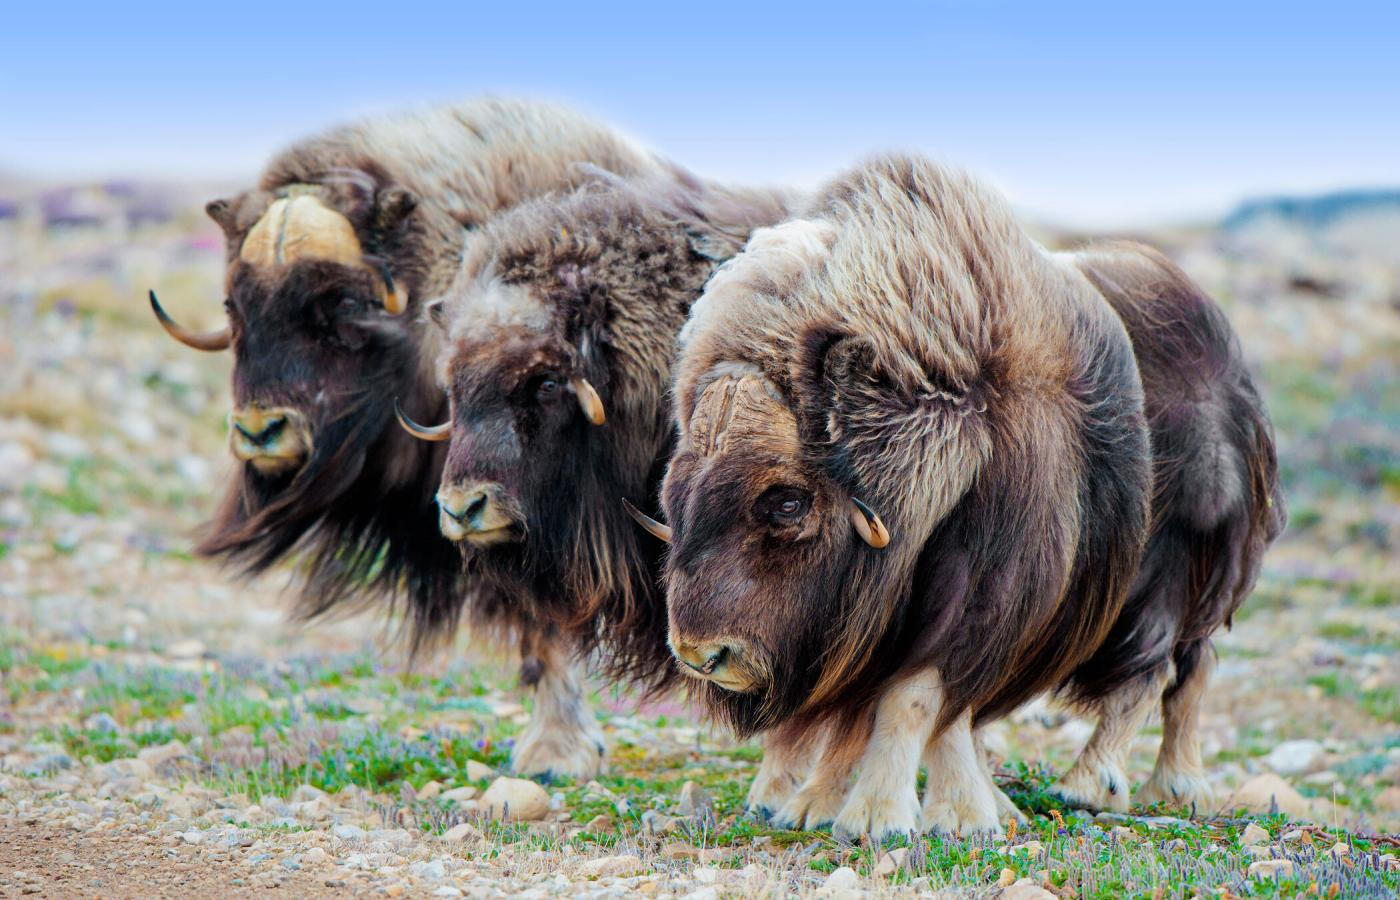 Banks Island in Canada's Northwest Territories is home to the majority of the planet's muskoxen